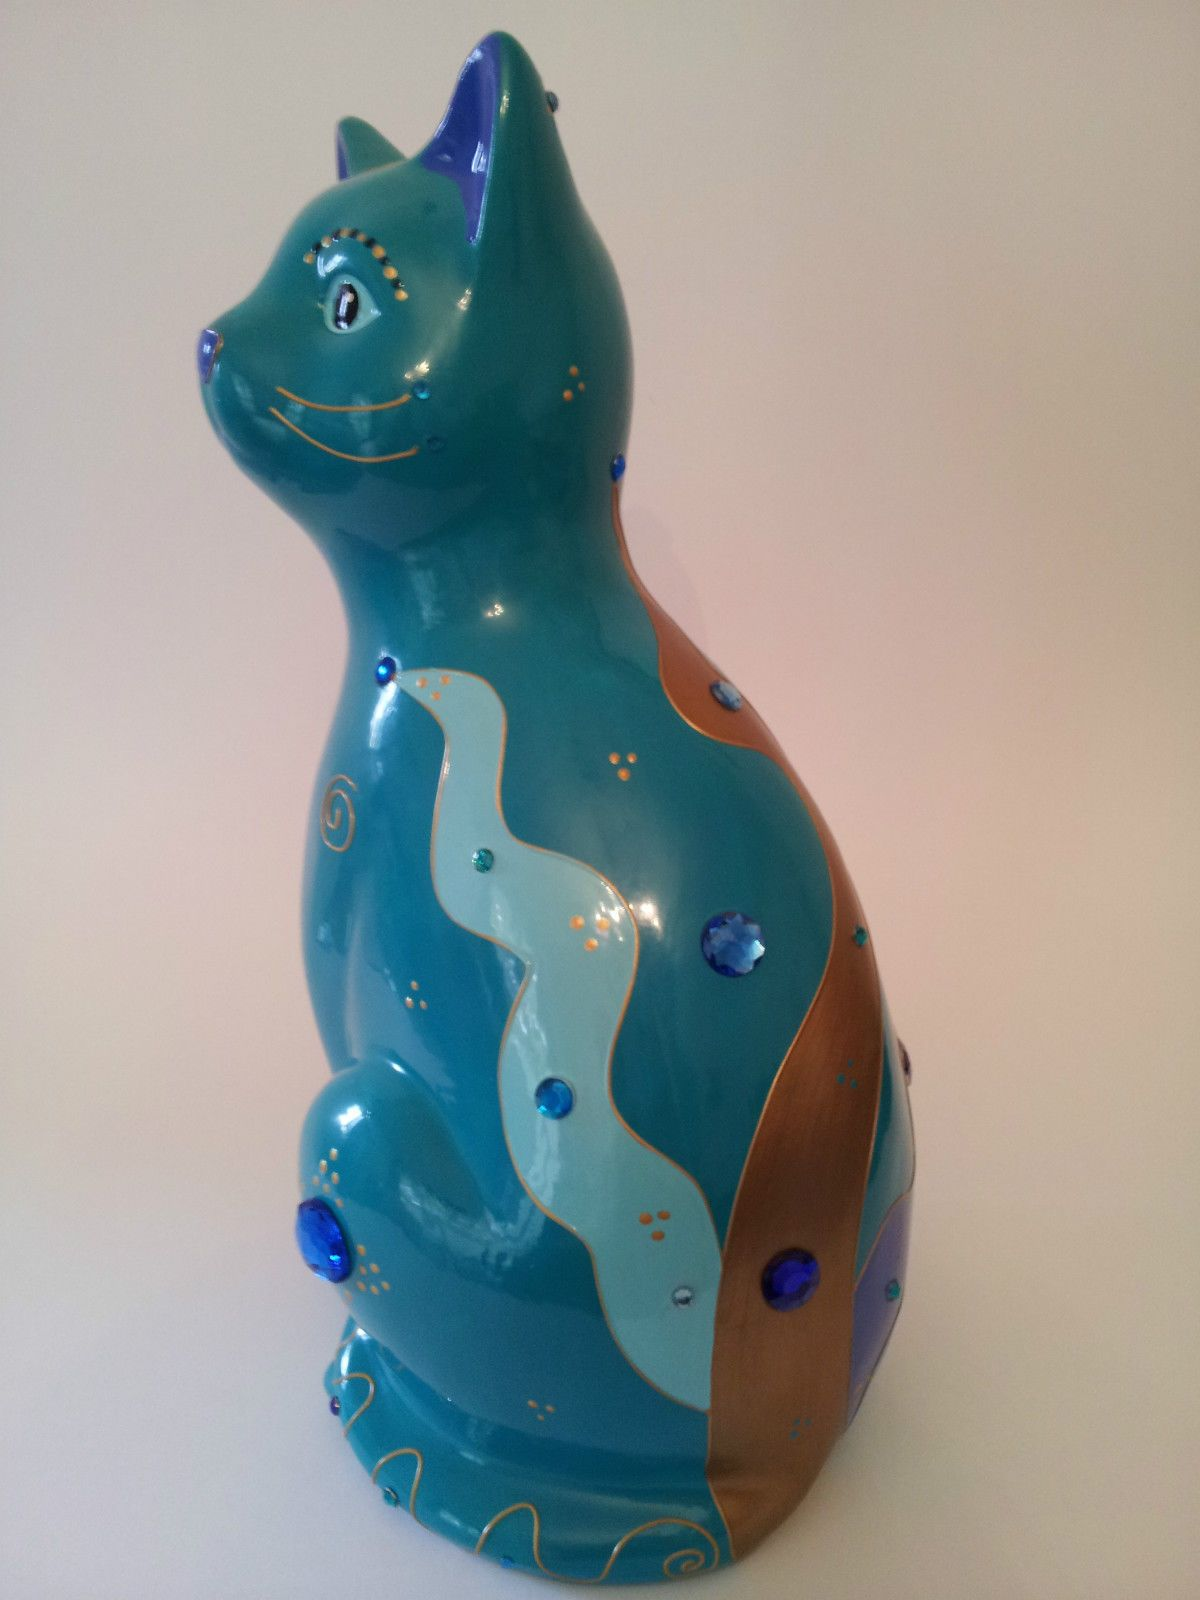 """Statue of cat """"Indigo"""" ceramic, decoration or collection by Laure Terrier   eBay"""